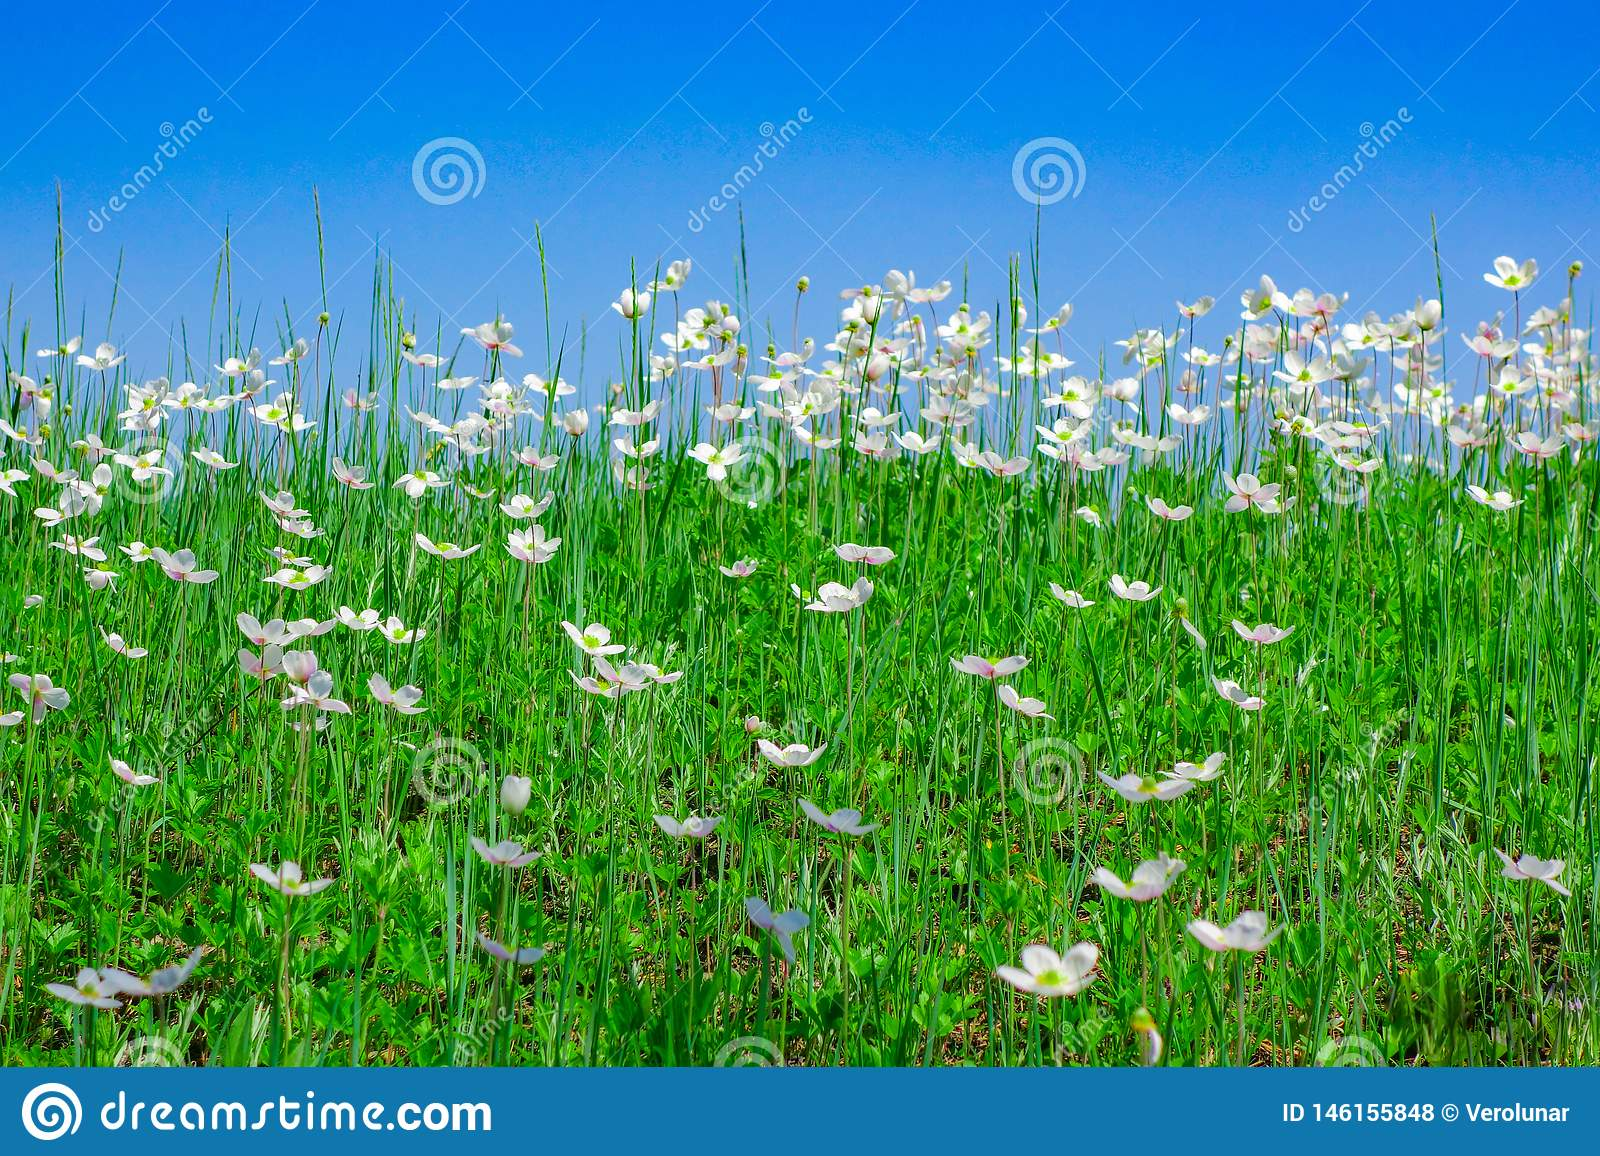 Blue sky over a field of white flowers